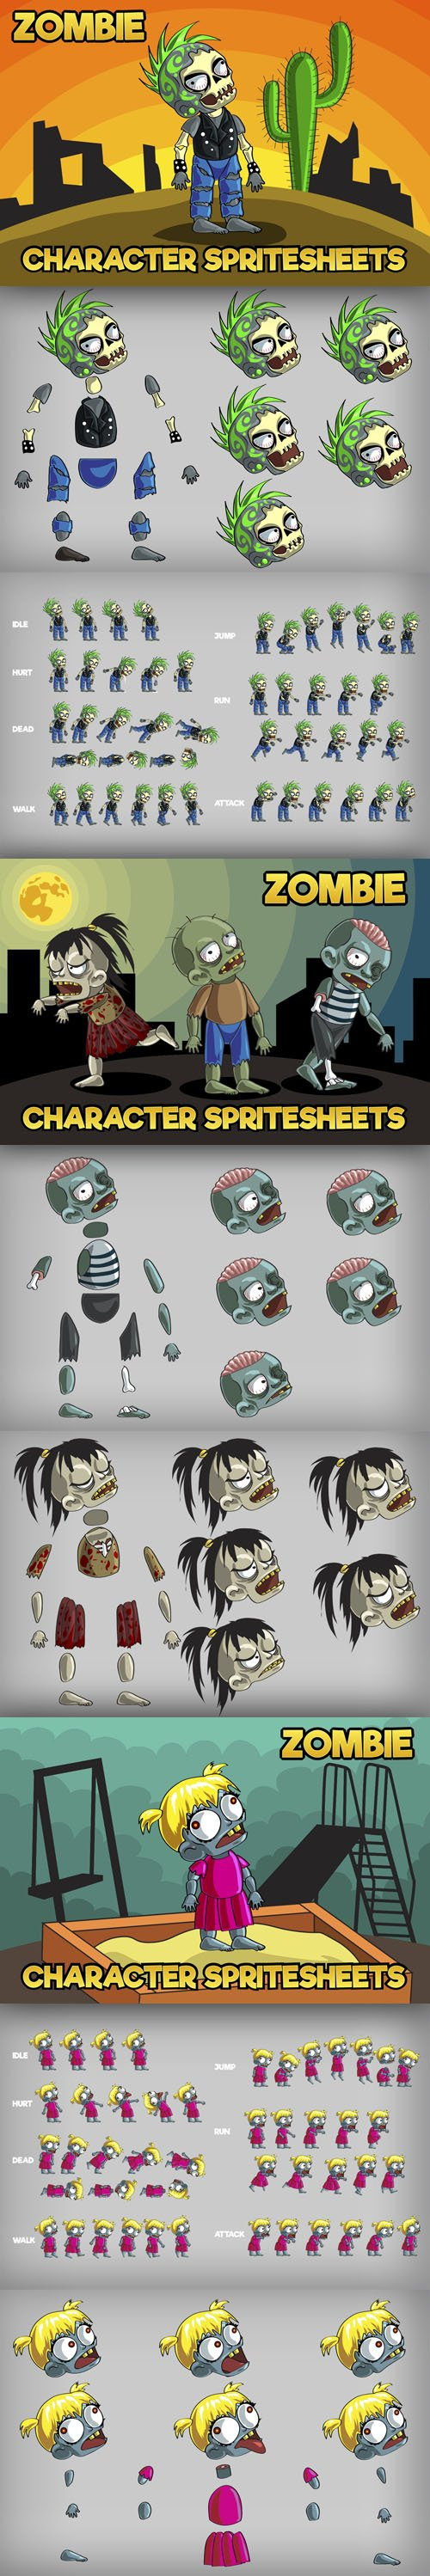 2D Game Zombie Characters With Animations - Sprite Pack [AI/PNG]